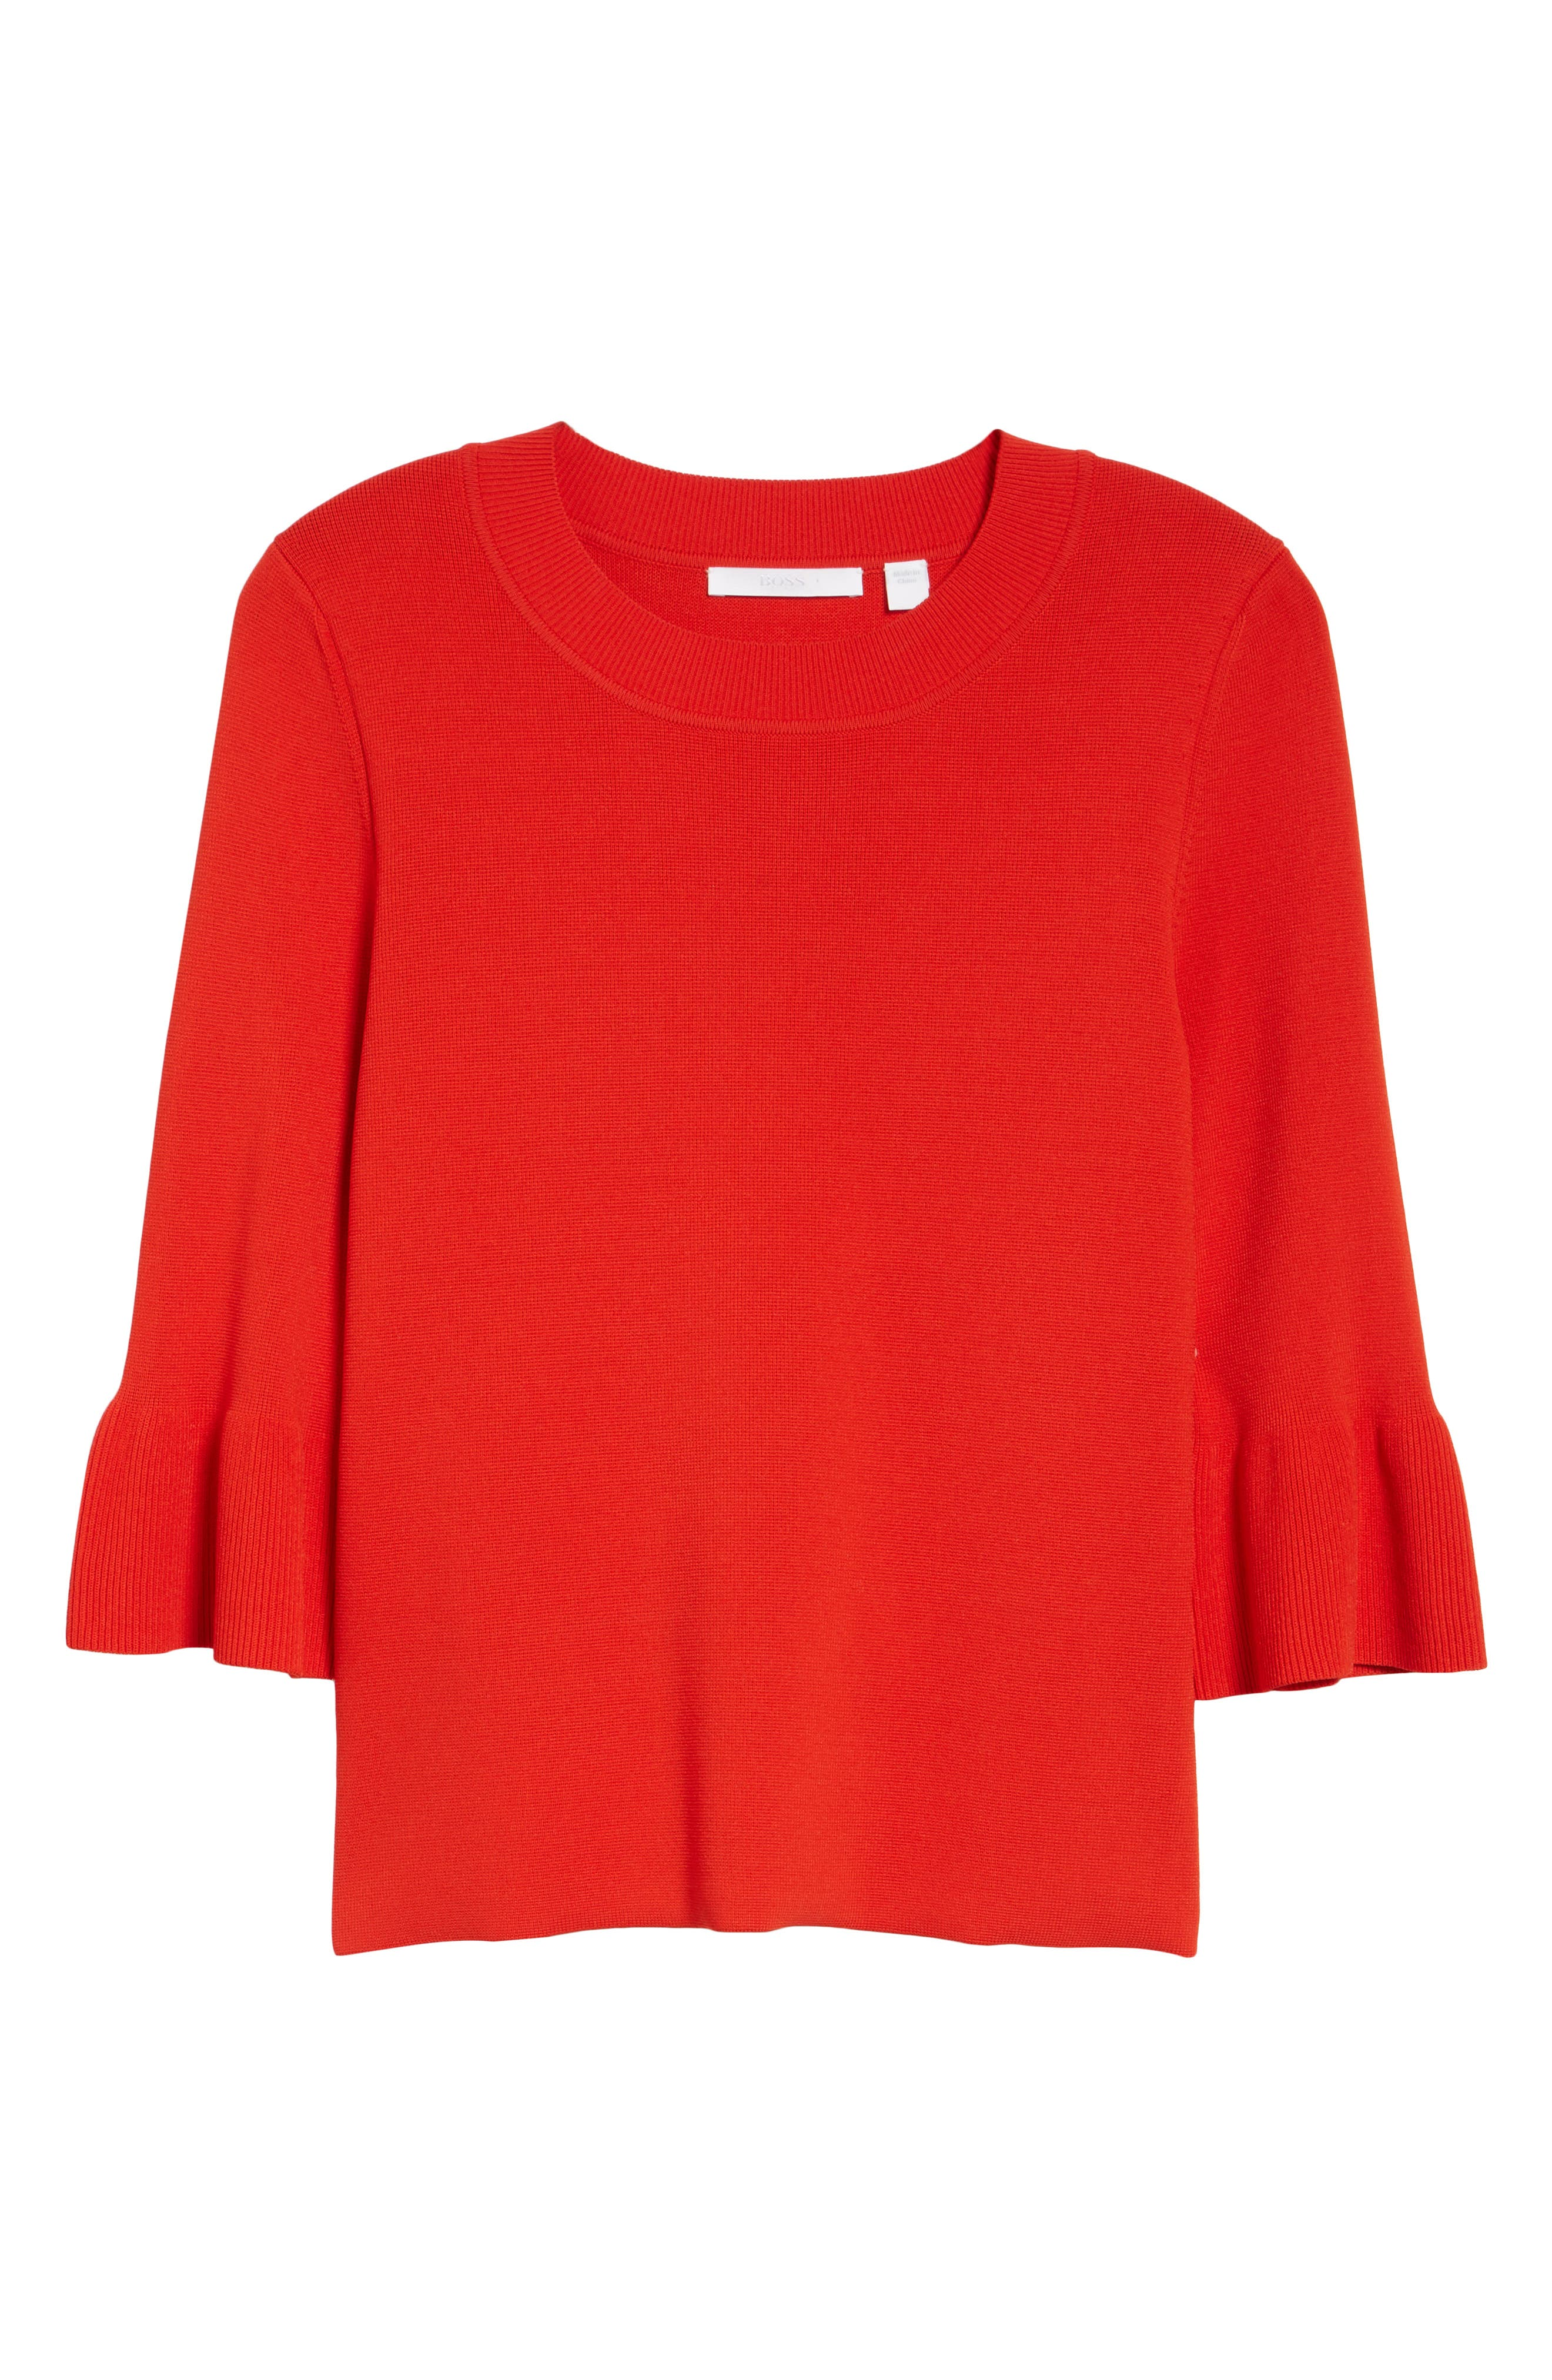 Fenella Ruffle Sleeve Sweater,                             Alternate thumbnail 12, color,